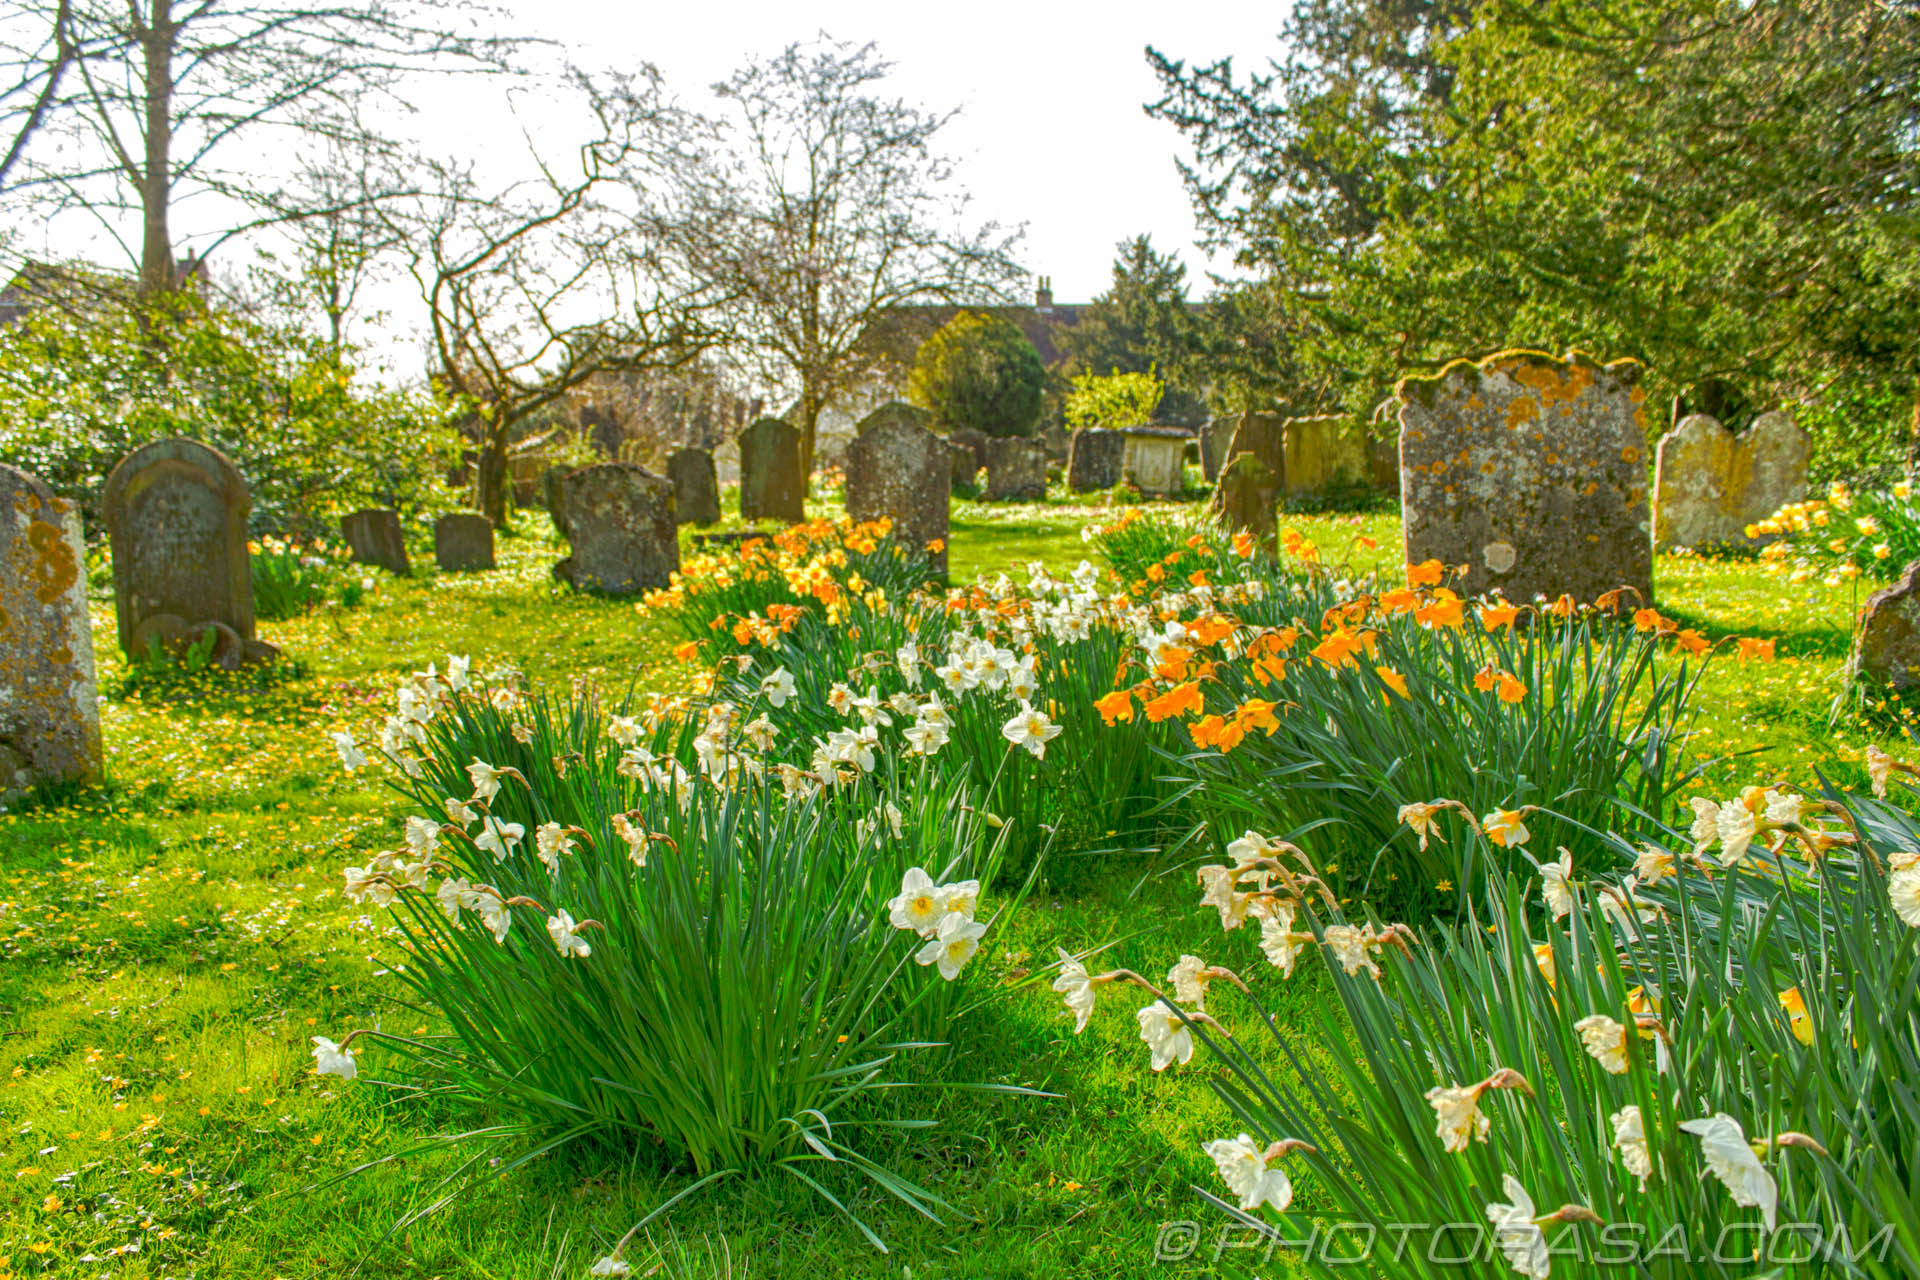 http://photorasa.com/saints-church-staplehurst-kent/yellow-and-white-daffodils-in-the-churchyard/